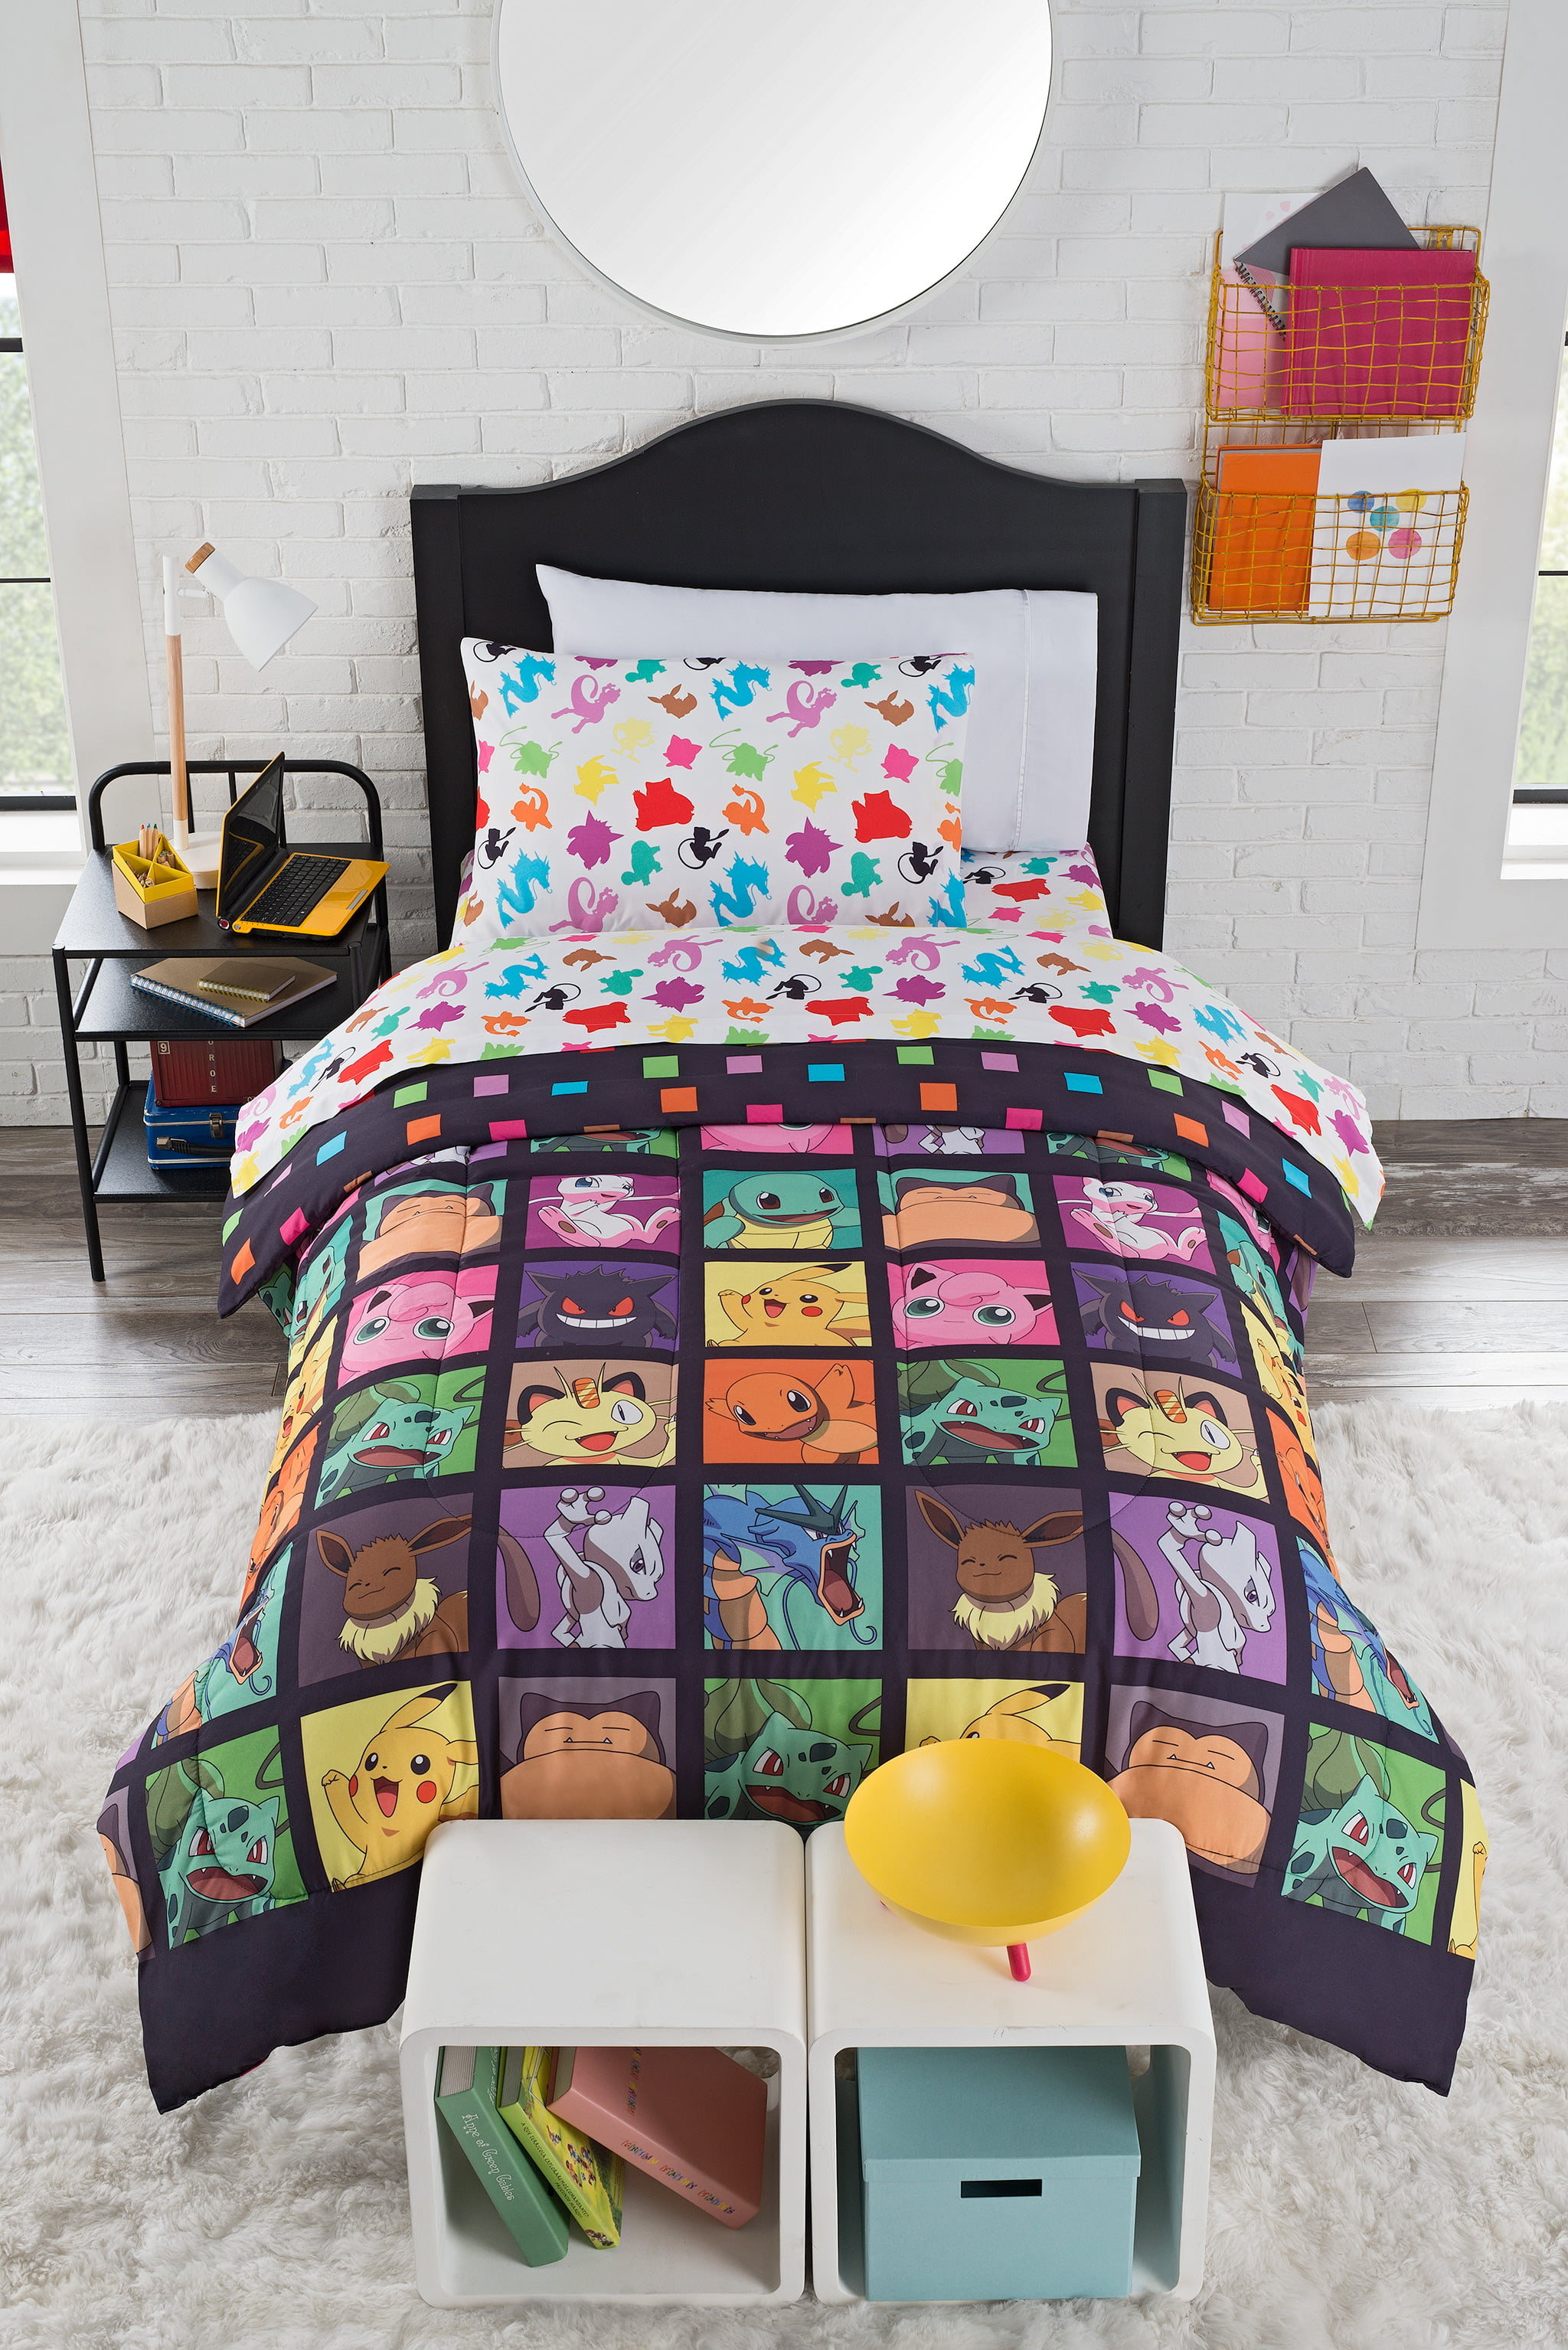 Home Kids Rooms Bedding Comforters This Pokemon Kanto Favorites Twin Bed In Bag Set By The Northwest Company Is Perfect Way To Show